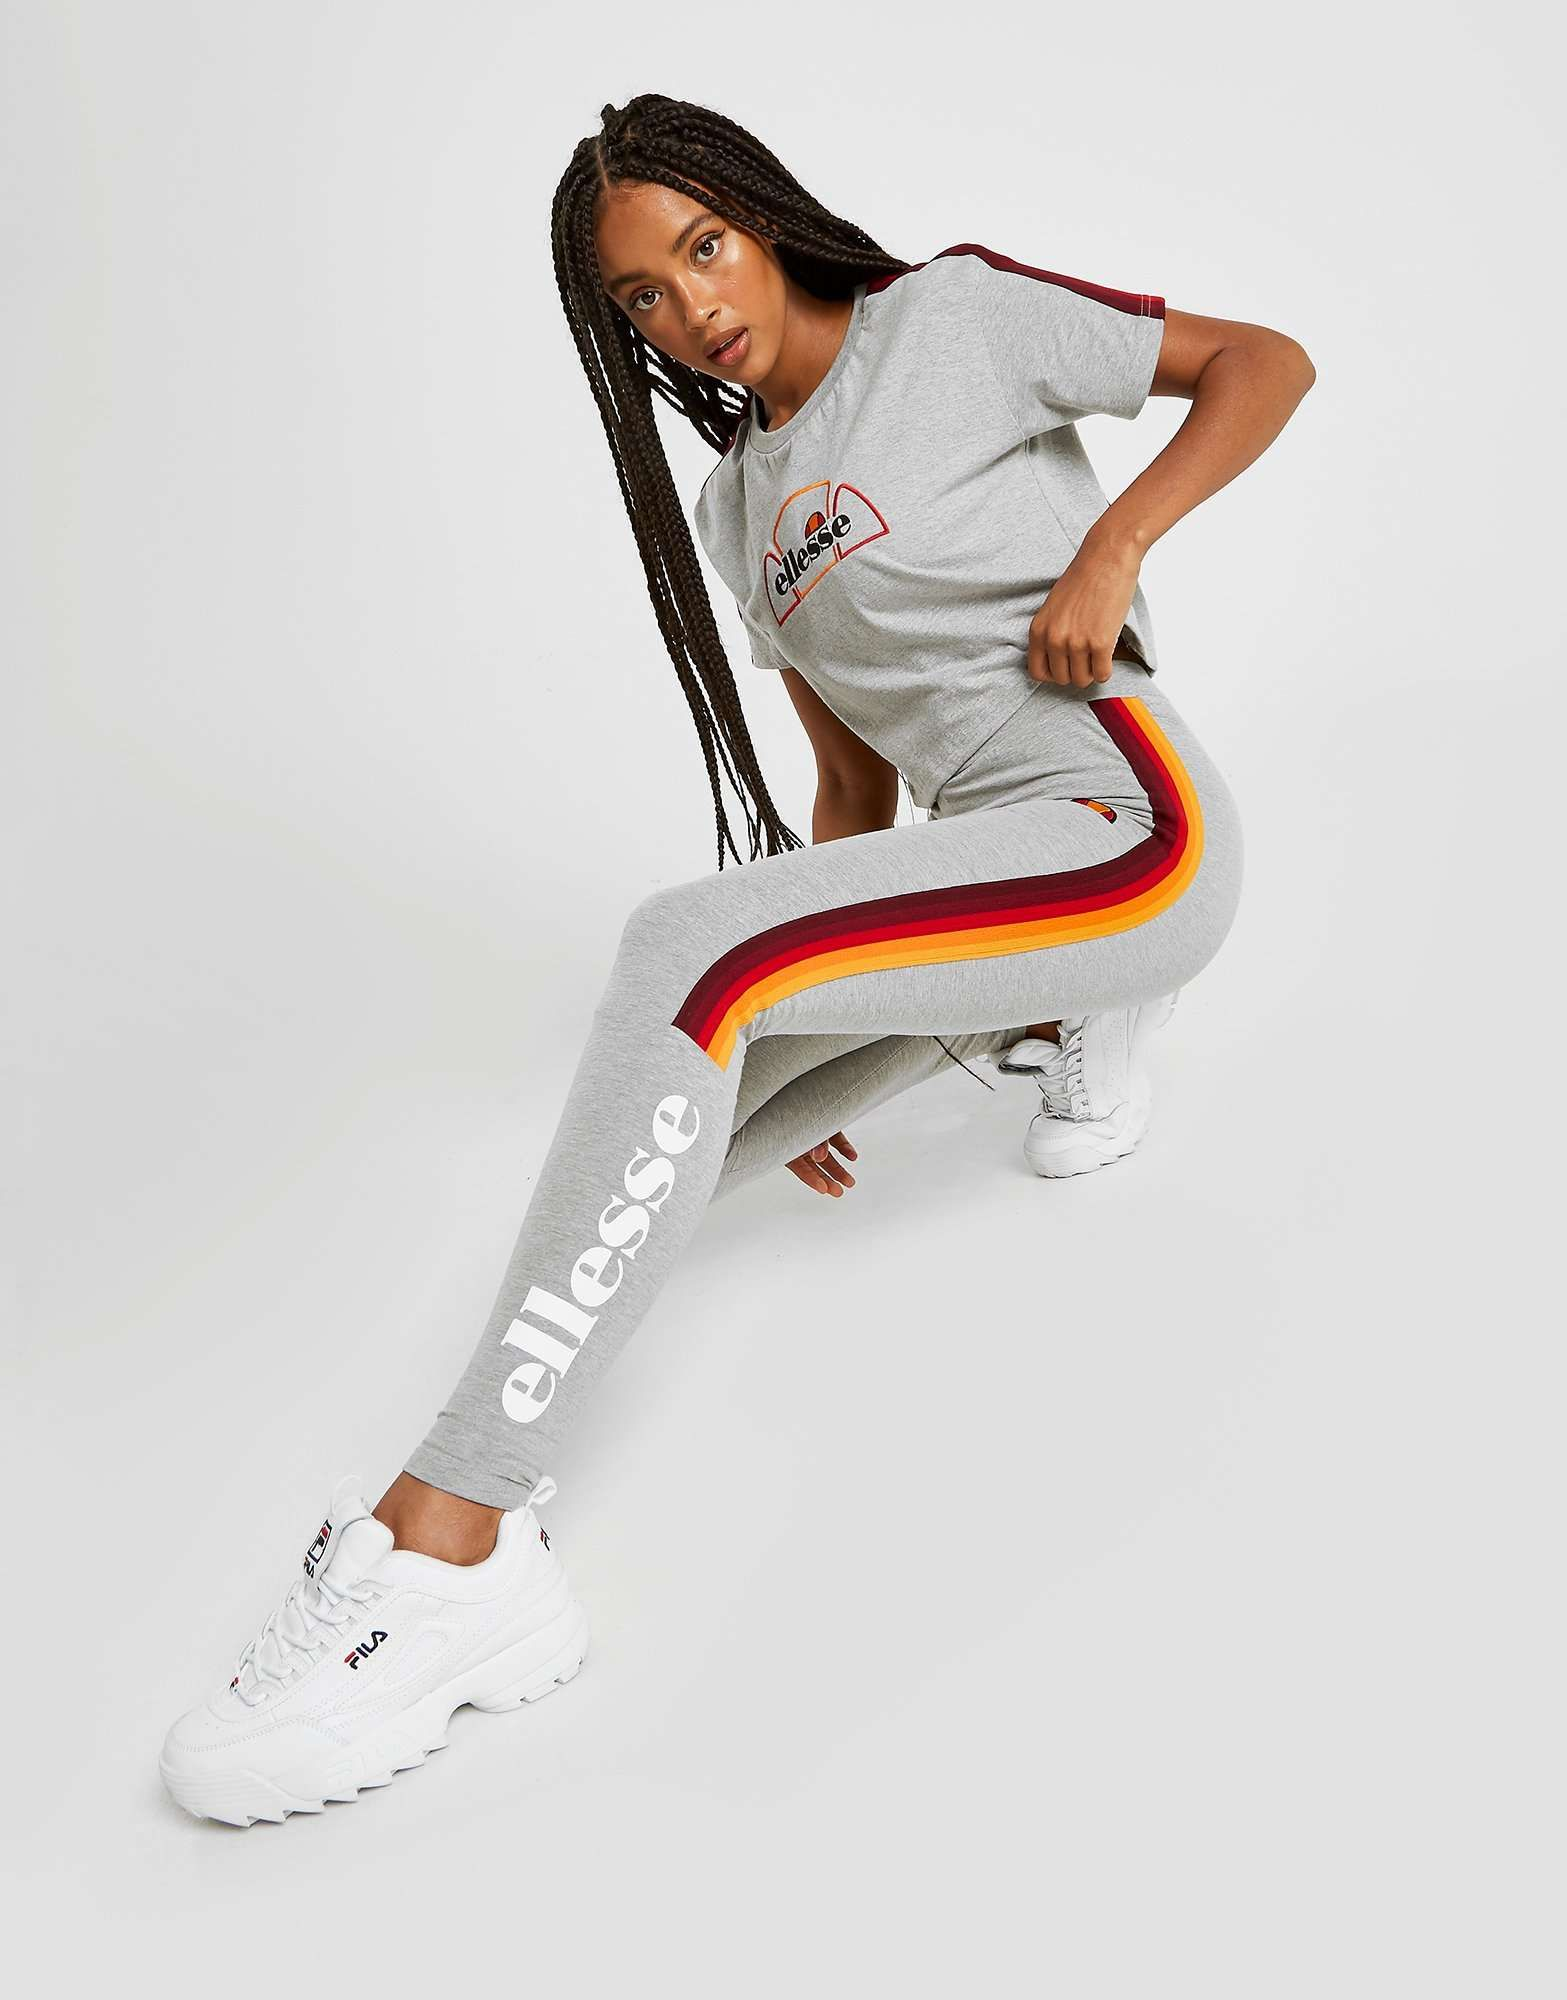 Pin by 🦋𝓻𝓸𝔁𝓲𝓮🦋 on ellesse♡ in 2020 Retail fashion